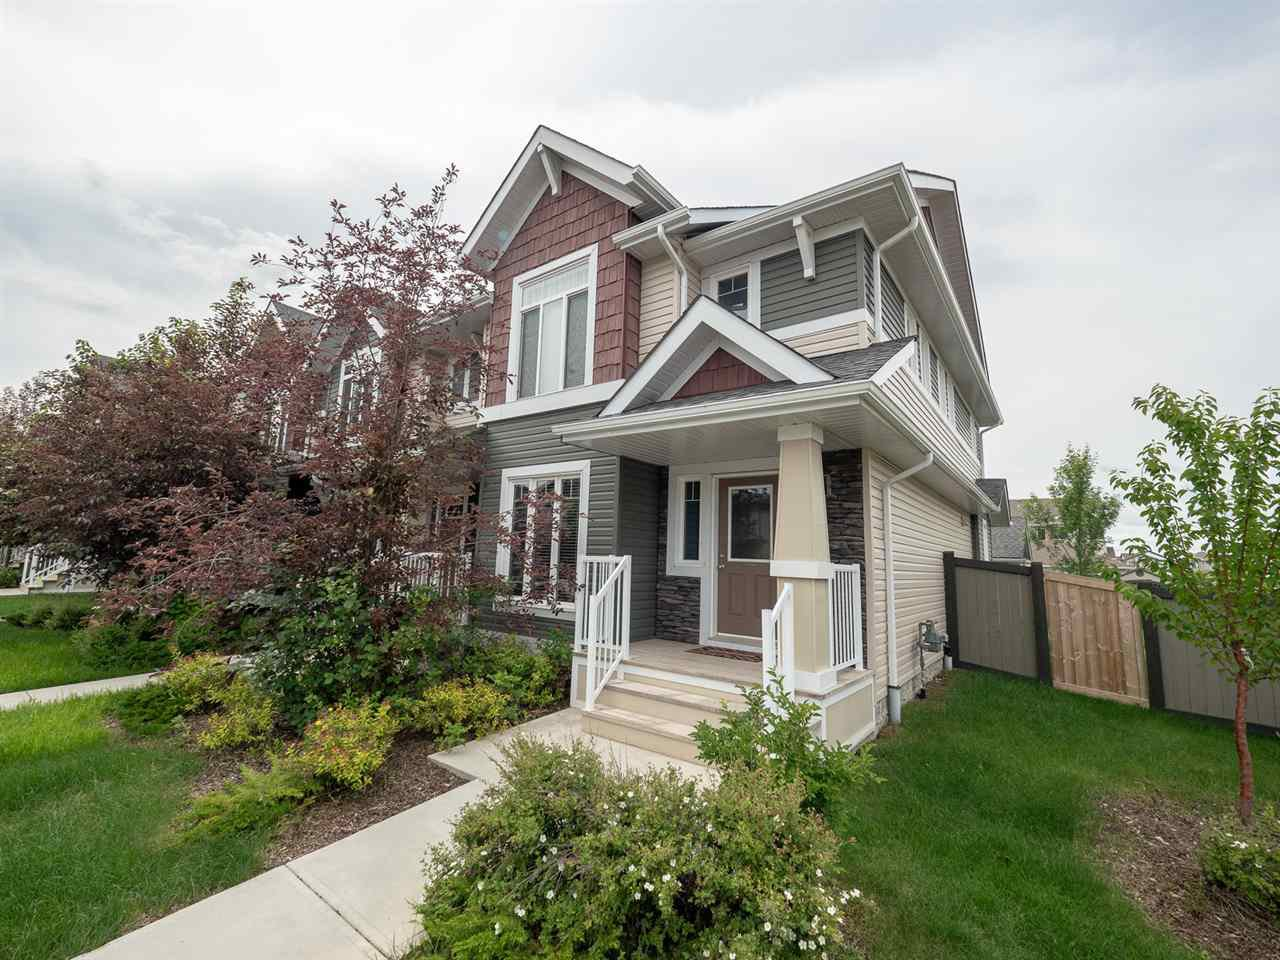 Main Photo: 704 176 Street in Edmonton: Zone 56 Attached Home for sale : MLS®# E4167890